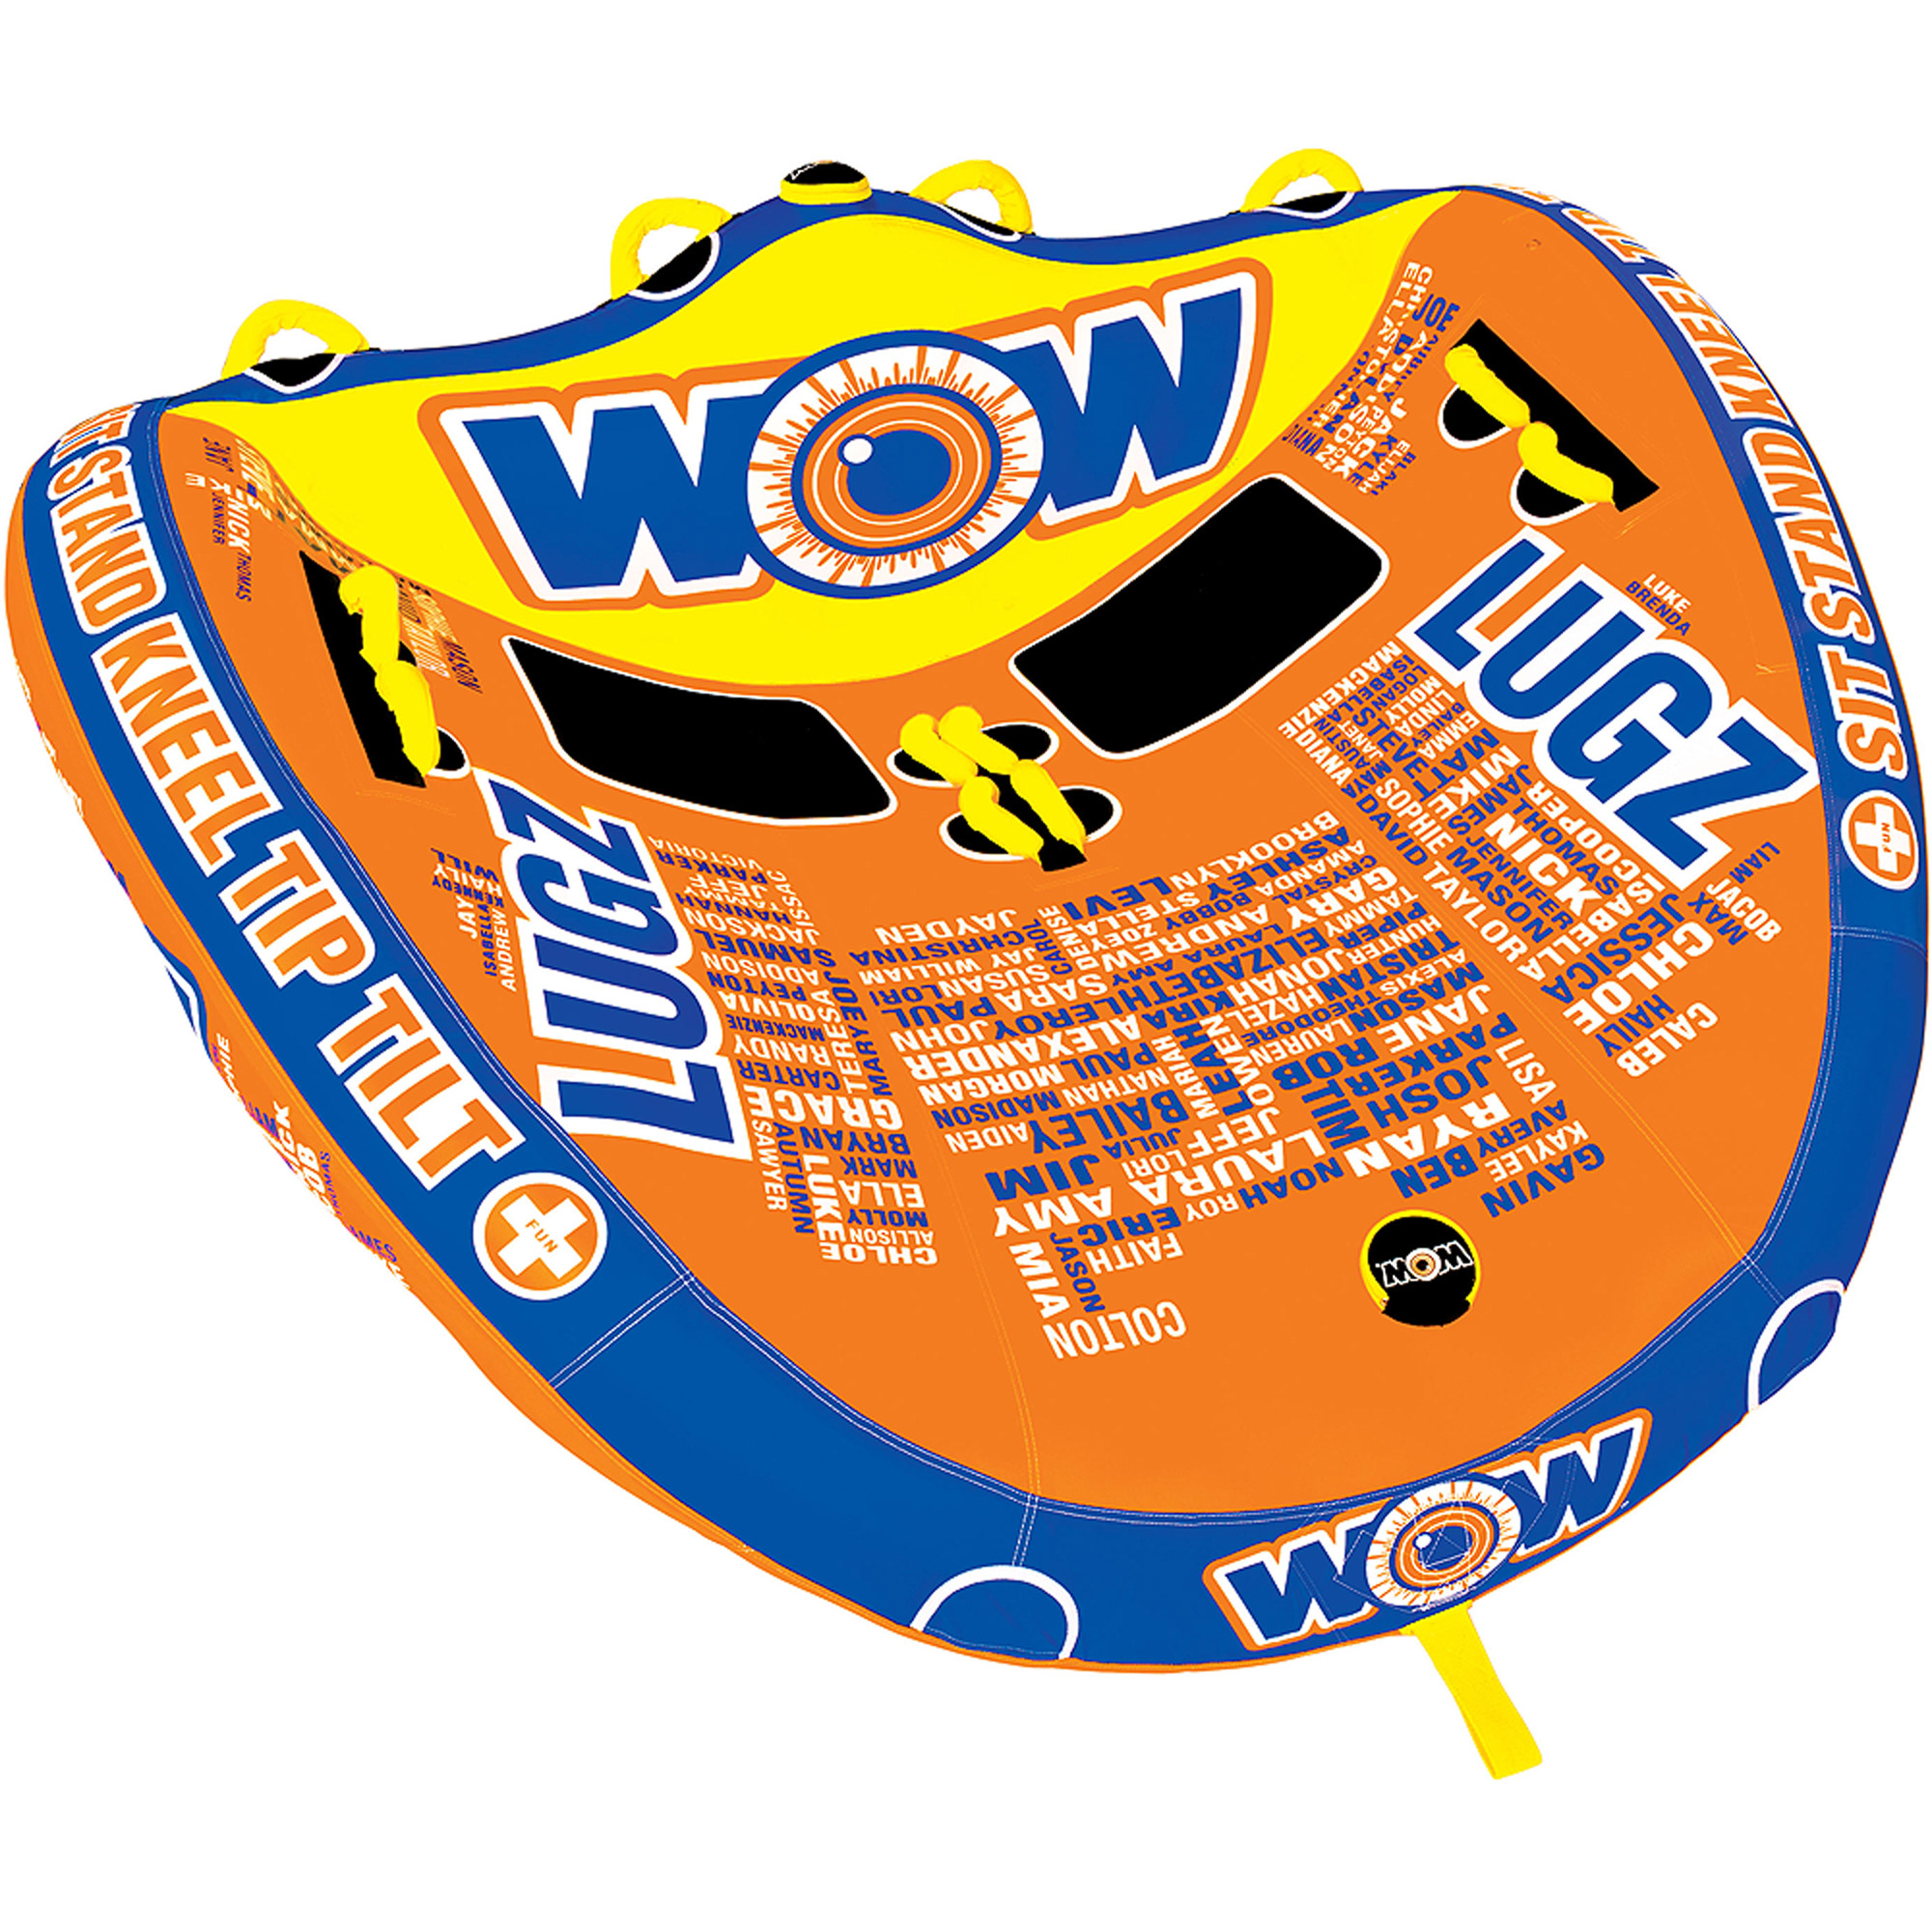 WOW World of Watersports, 13-1040, Lugz 2 Towable, 3 Tow Points, Steerable, 1 or 2 Person by World of Watersports